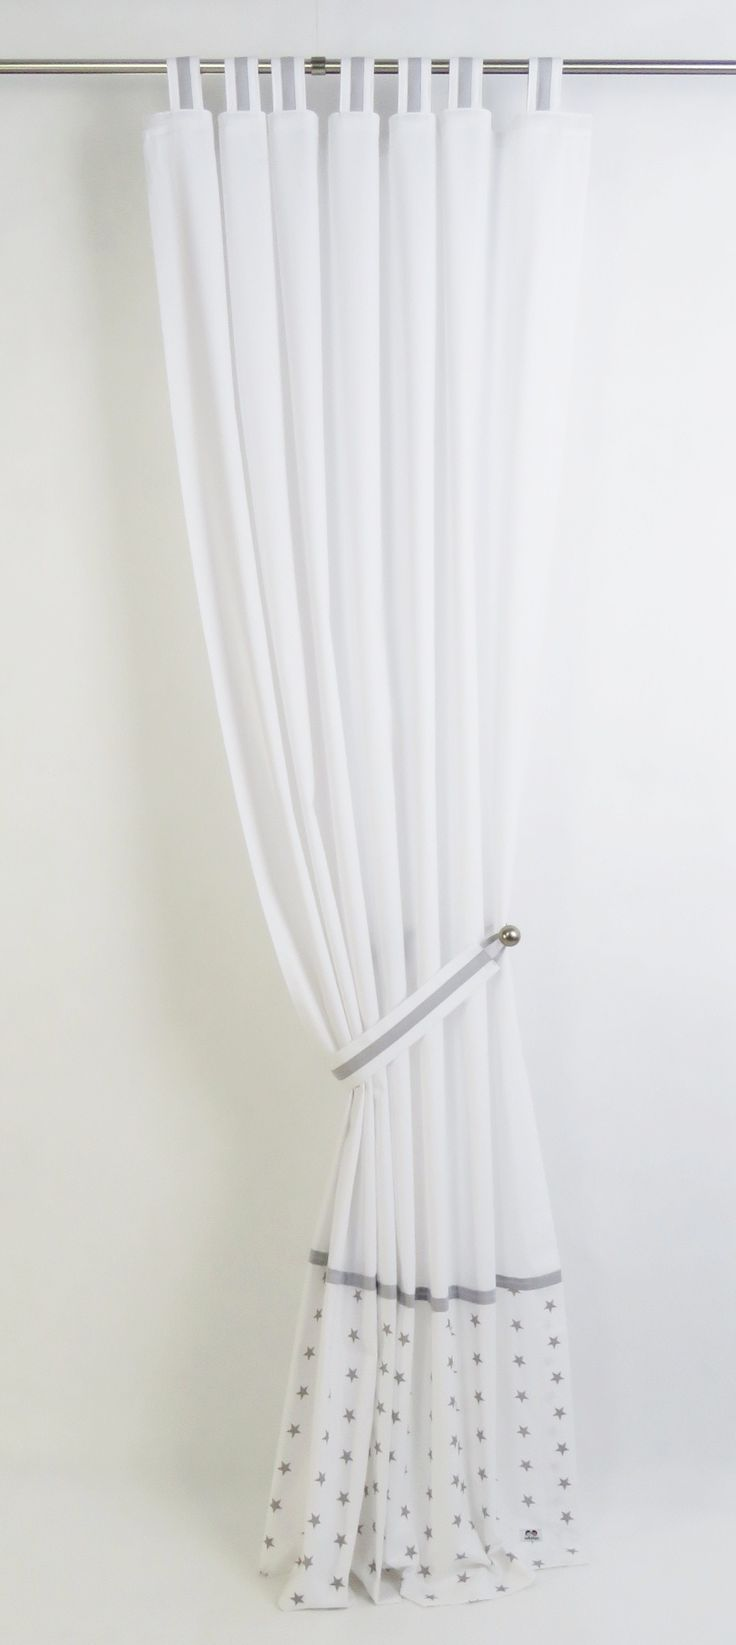 Blackout Shades For Baby Room best 25+ nursery blackout curtains ideas on pinterest | diy